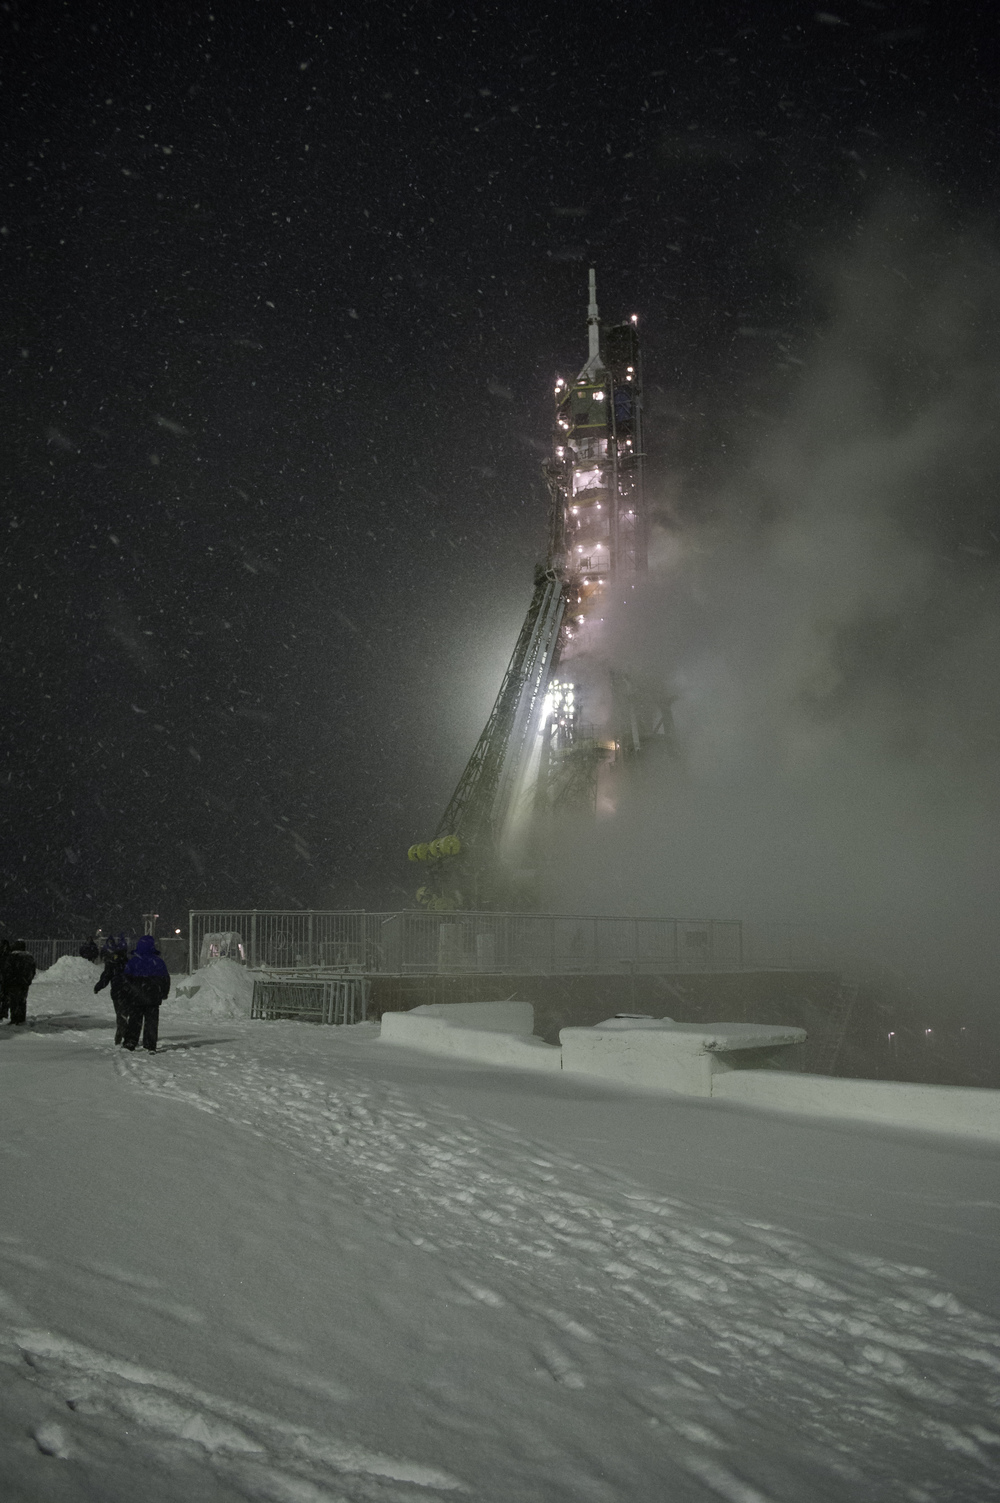 The Soyuz TMA-22 rocket is seen at the Soyuz launch pad during a snow storm the morning of the launch of Expedition 29 to the International Space Station at the Baikonur Cosmodrome in Kazakhstan, Monday, Nov. 14, 2011. (NASA/Carla Cioffi)